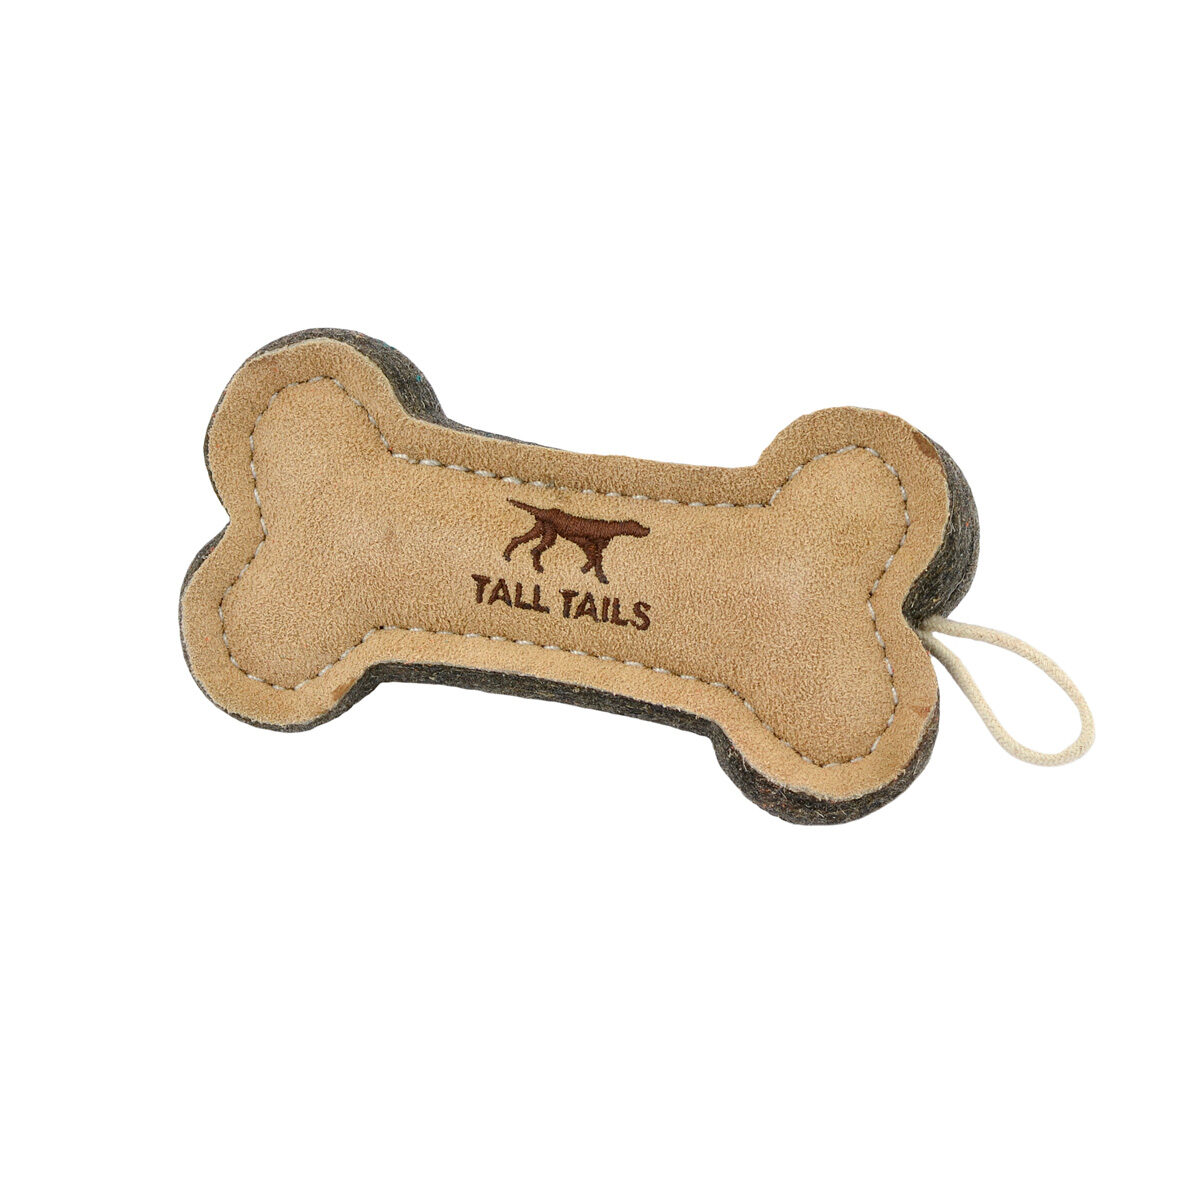 Tall Tails Natural Leather Bone Dog Toy